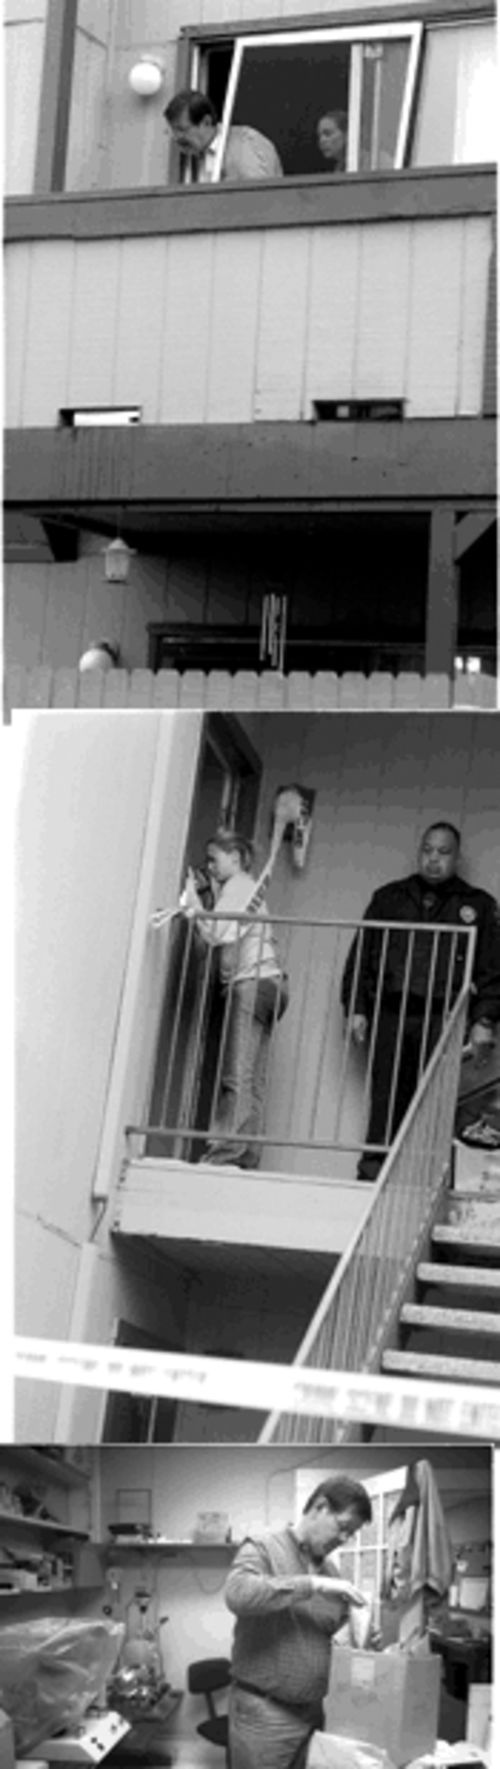 Top: Max Courtney and colleague Candace Horney work the scene of a double murder in Mansfield. Middle: Horney videotapes the entrance to the apartment. Bottom: Courtney at work in his lab in Fort Worth.